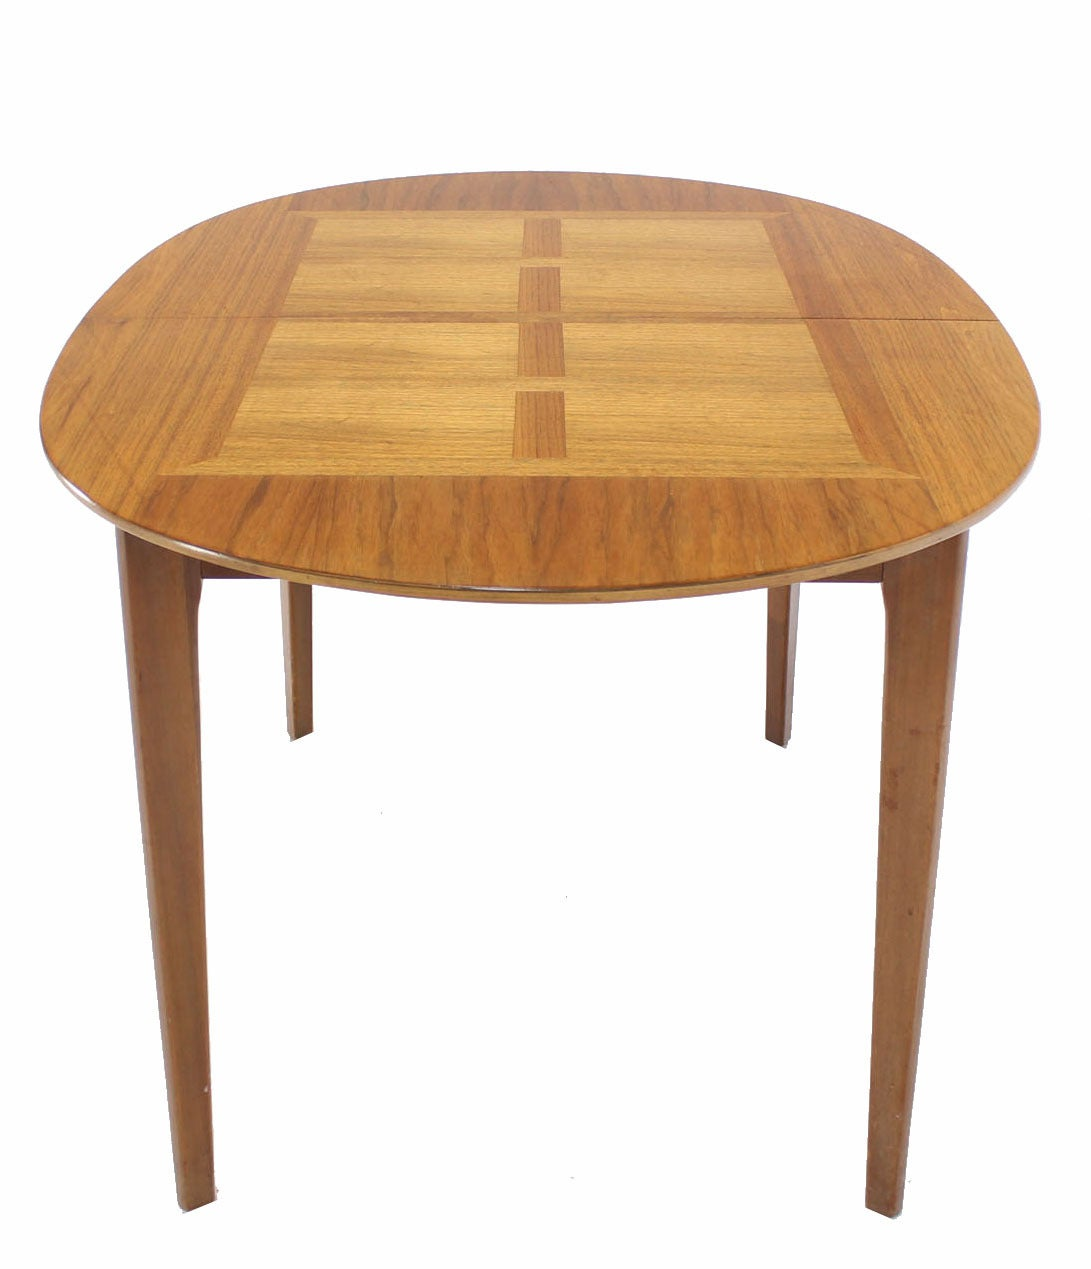 Mid Century Modern Walnut Oval Dining Table With Three Leaves At